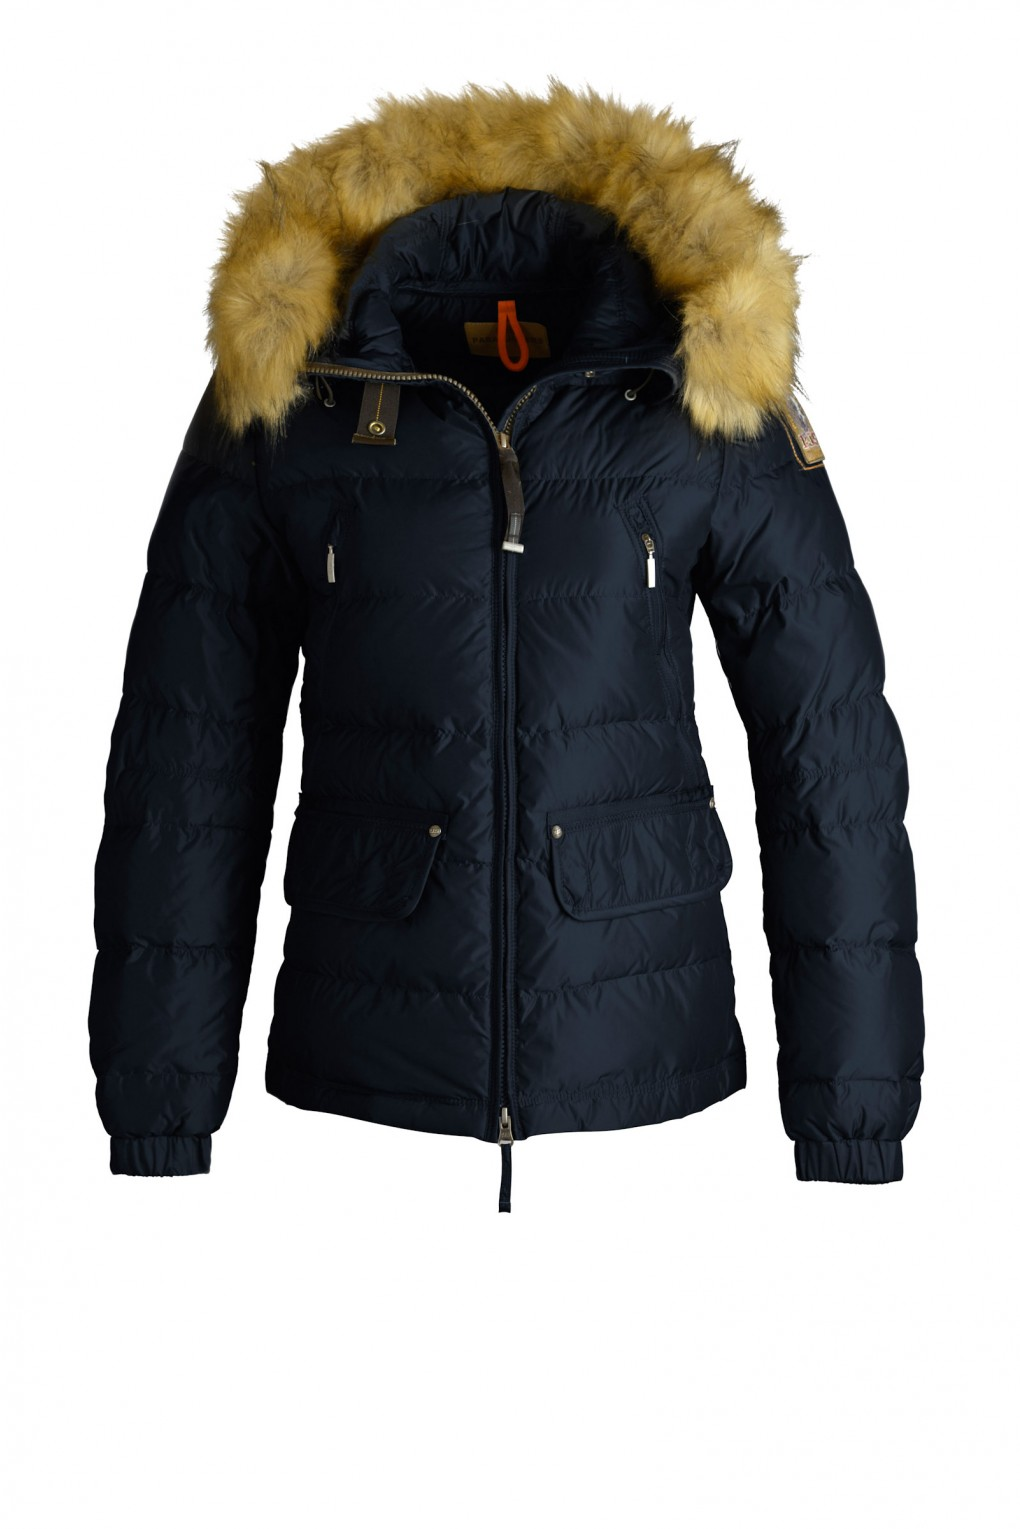 parajumpers ALASKA ECO woman outerwear Navy